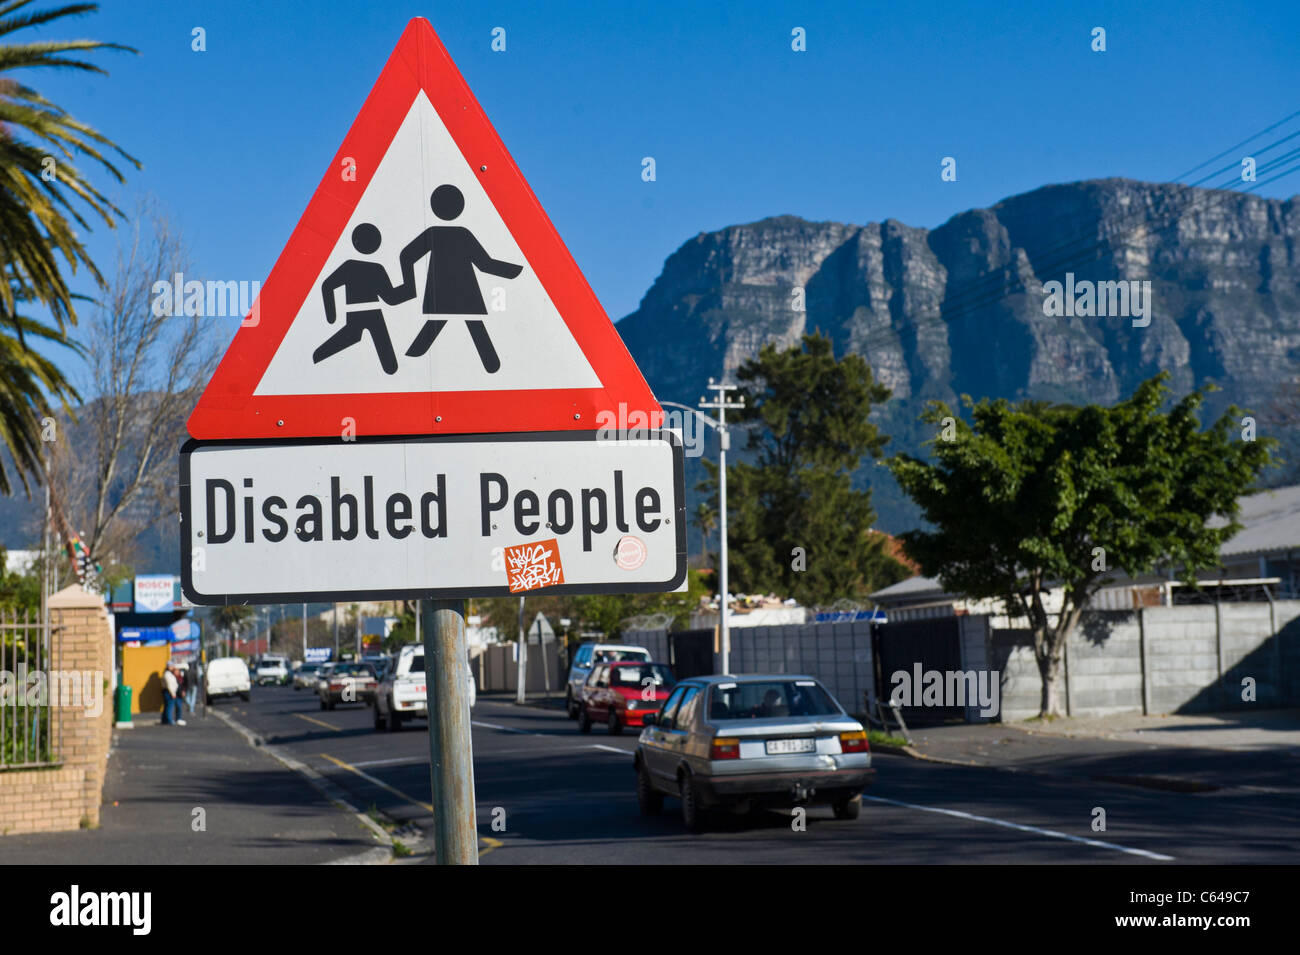 Traffic sign Disabled People Cape Town South Africa - Stock Image